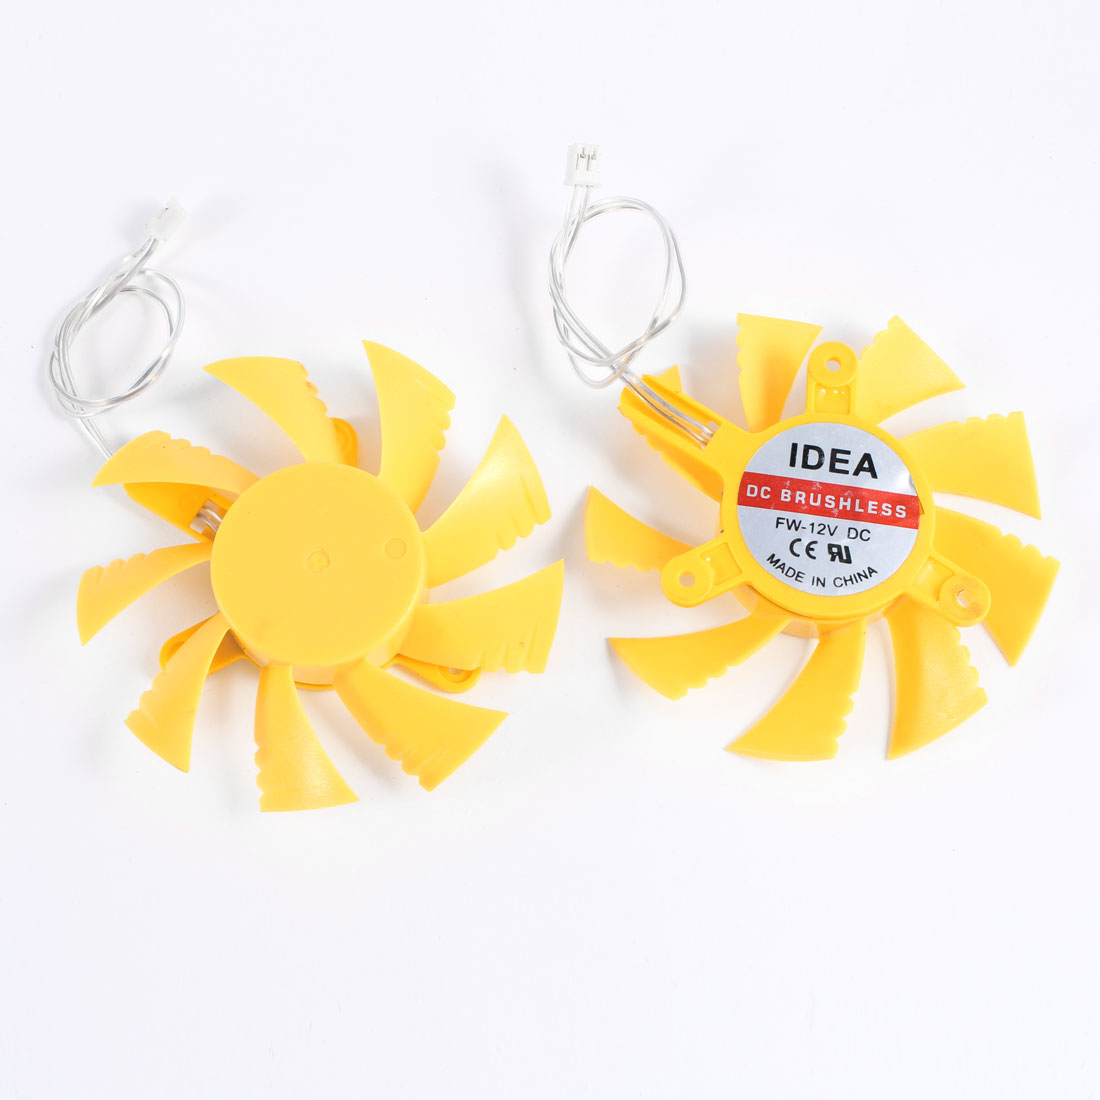 2 Pcs 75mm Yellow VGA Video Card Cooling Fan Cooler for PC Computer